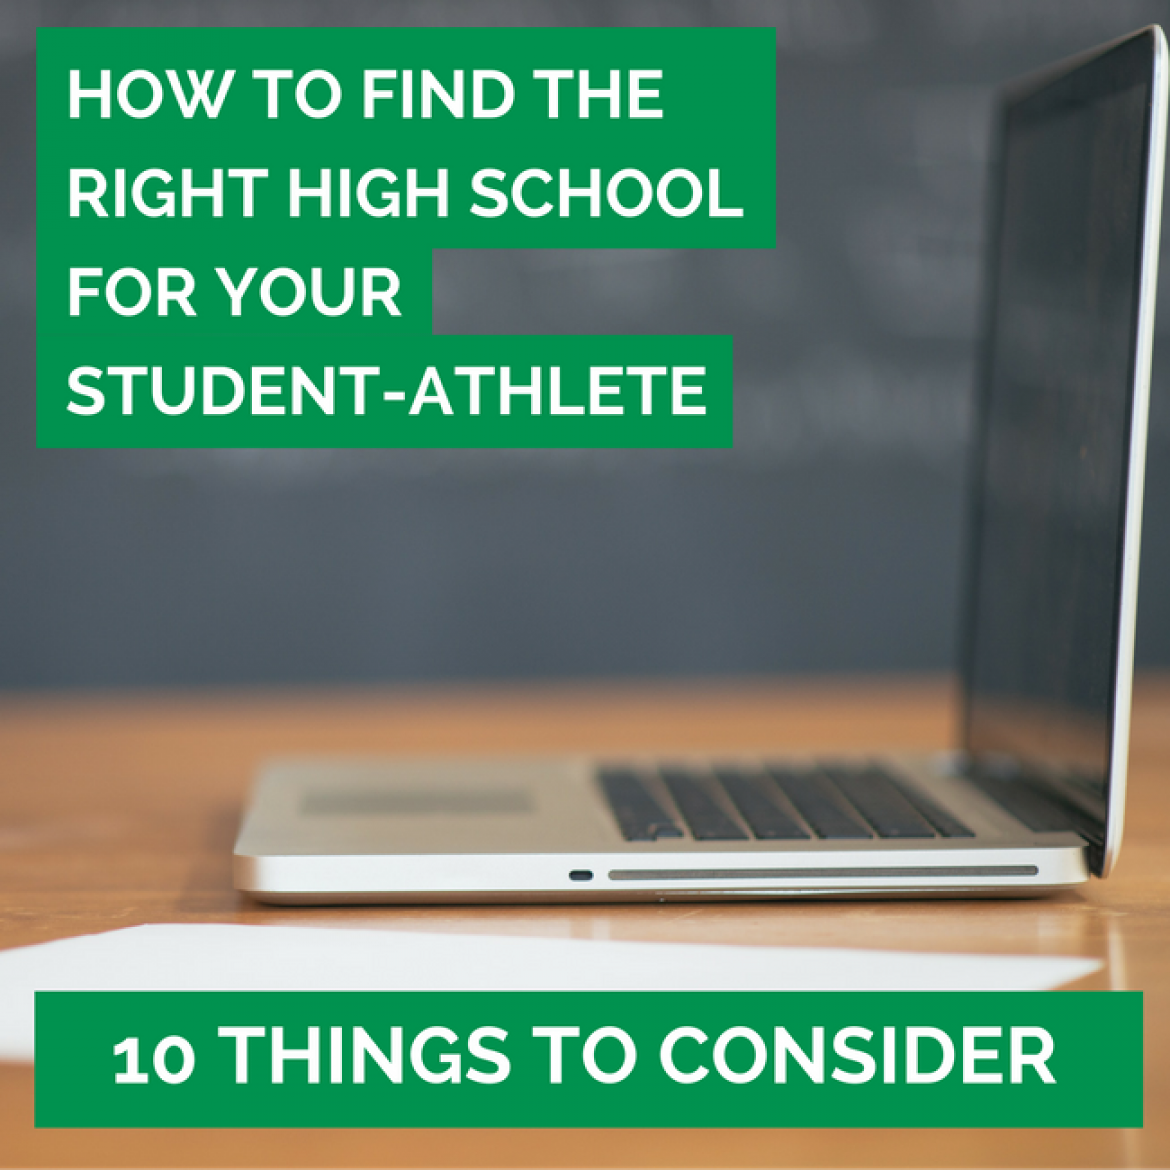 finding your place in high school What's the best way to find a company who will hire someone your age there are a few things you should know to help your job search go as smoothly as possible a good place to start is by looking into companies that hire high school students as a matter of policy.